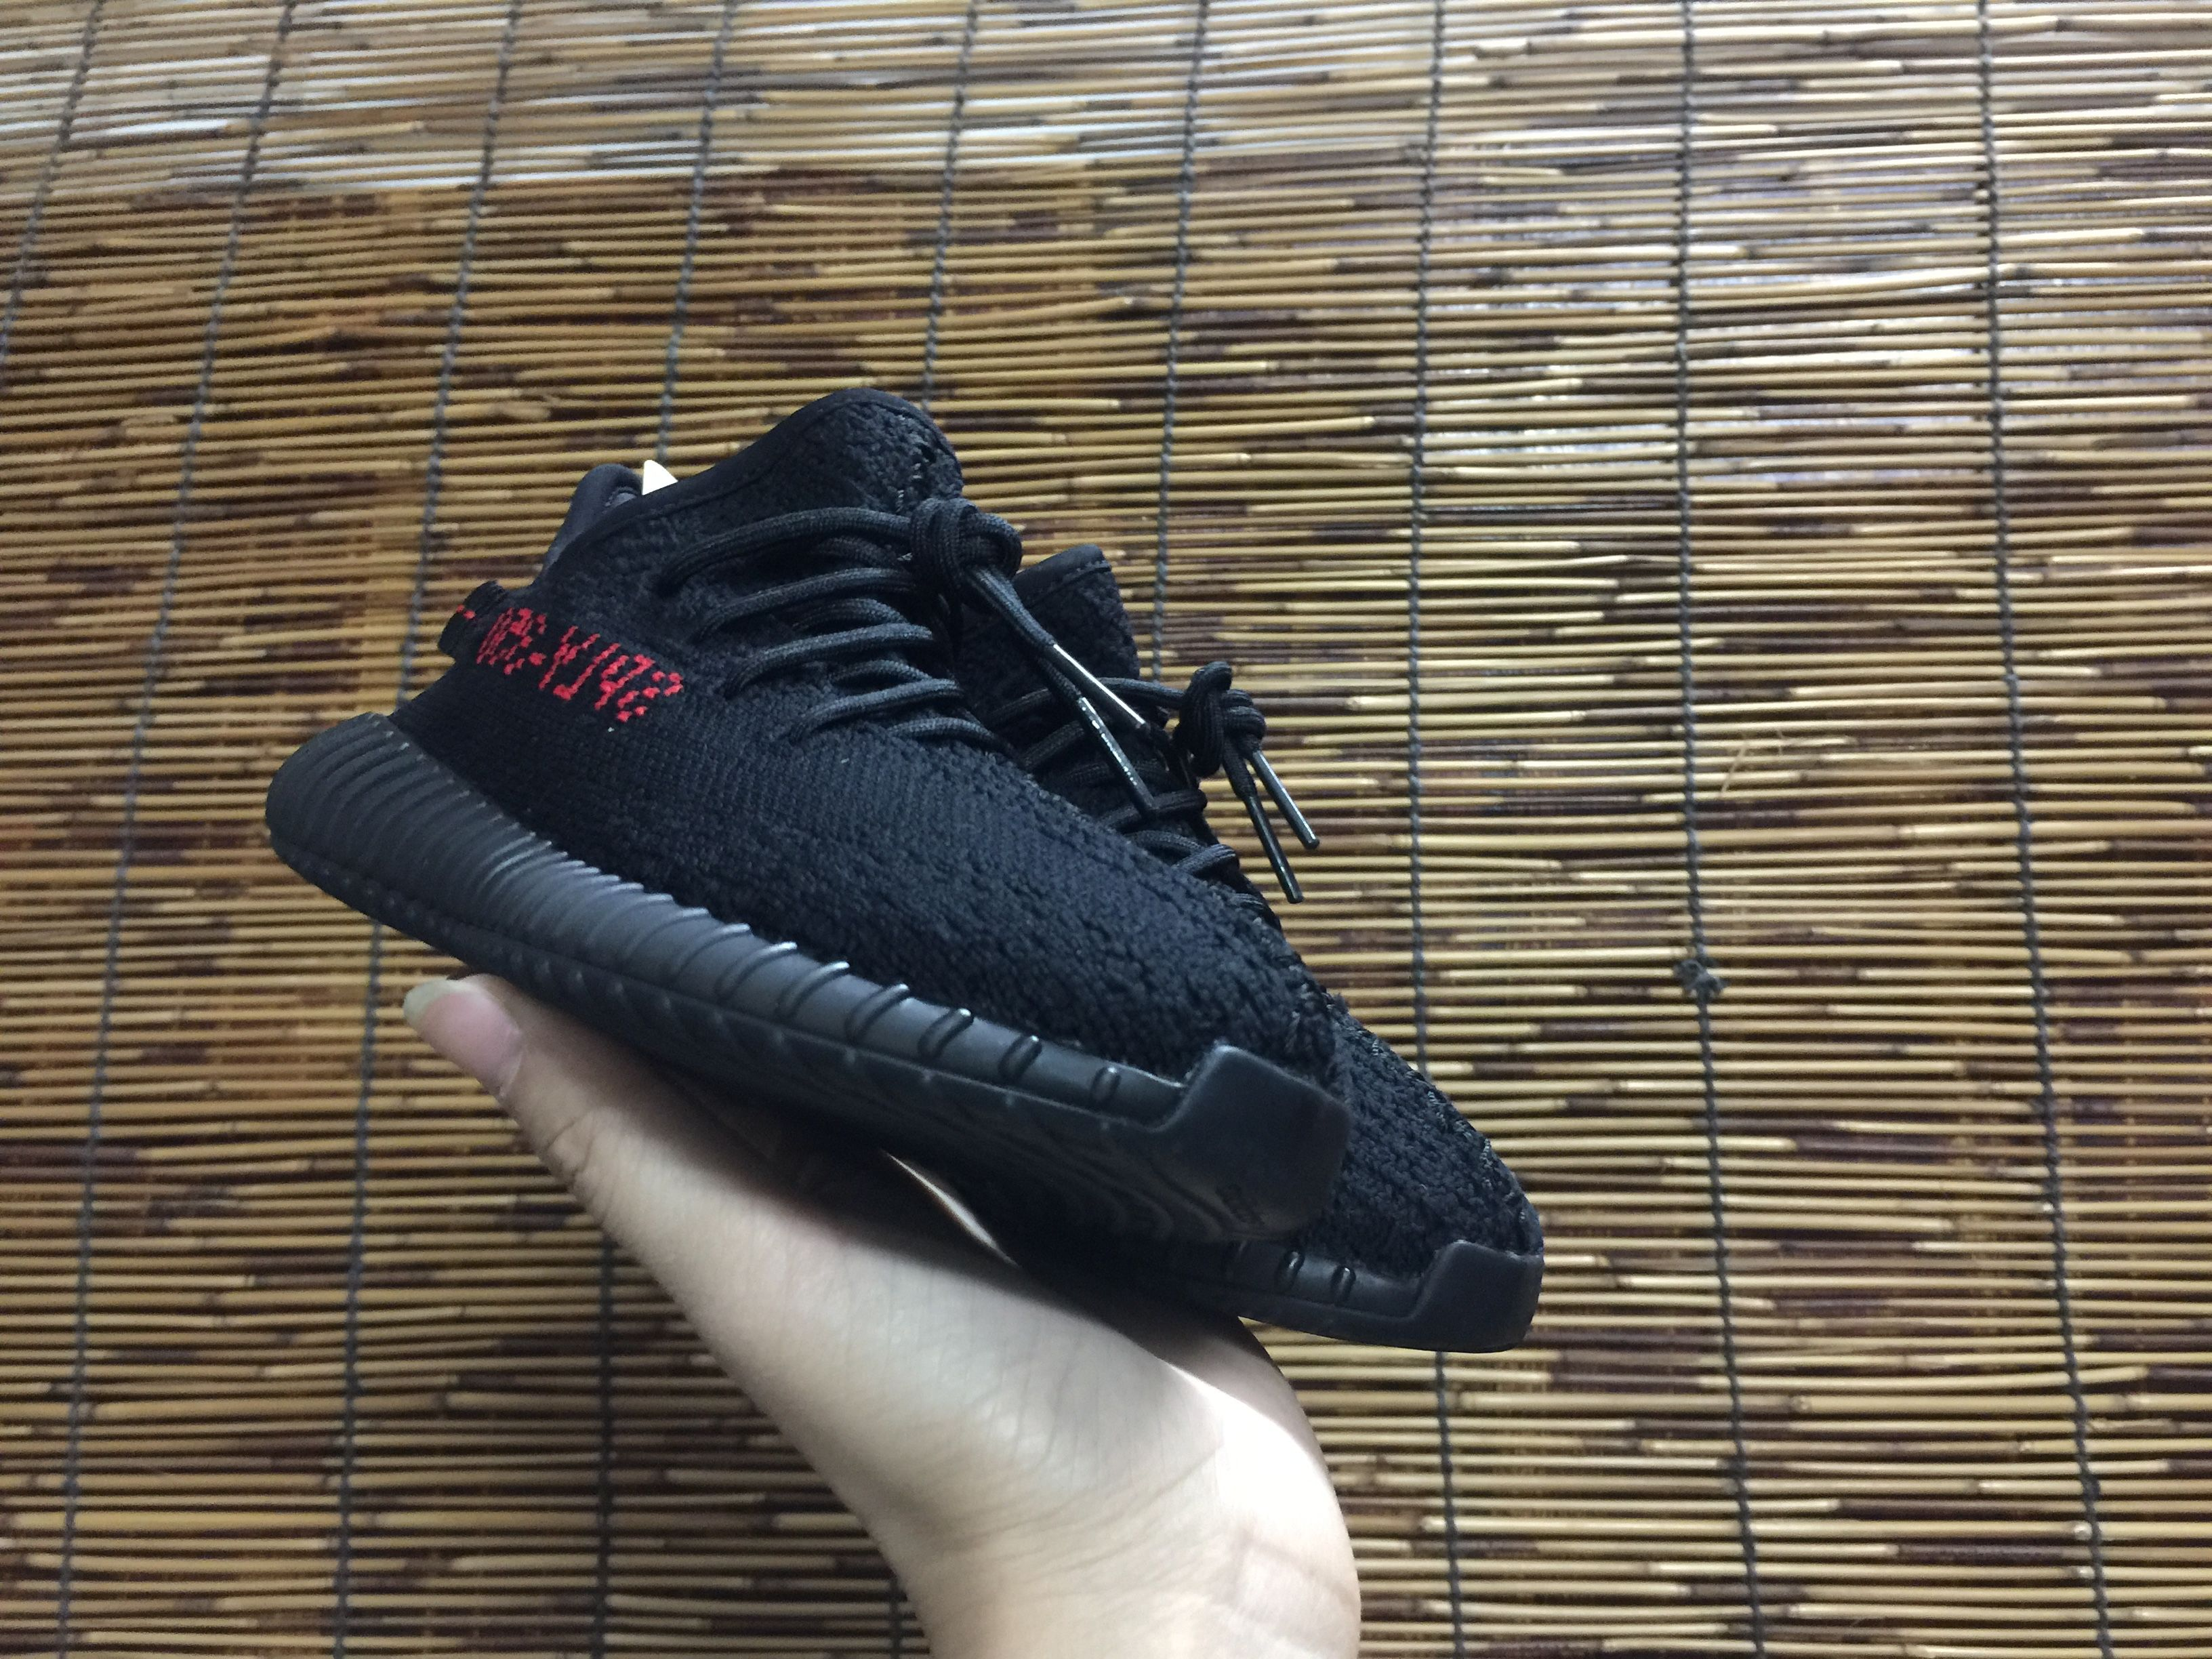 Best Originals Adidas Yeezy Boost 350 V2 Infant BlackRed